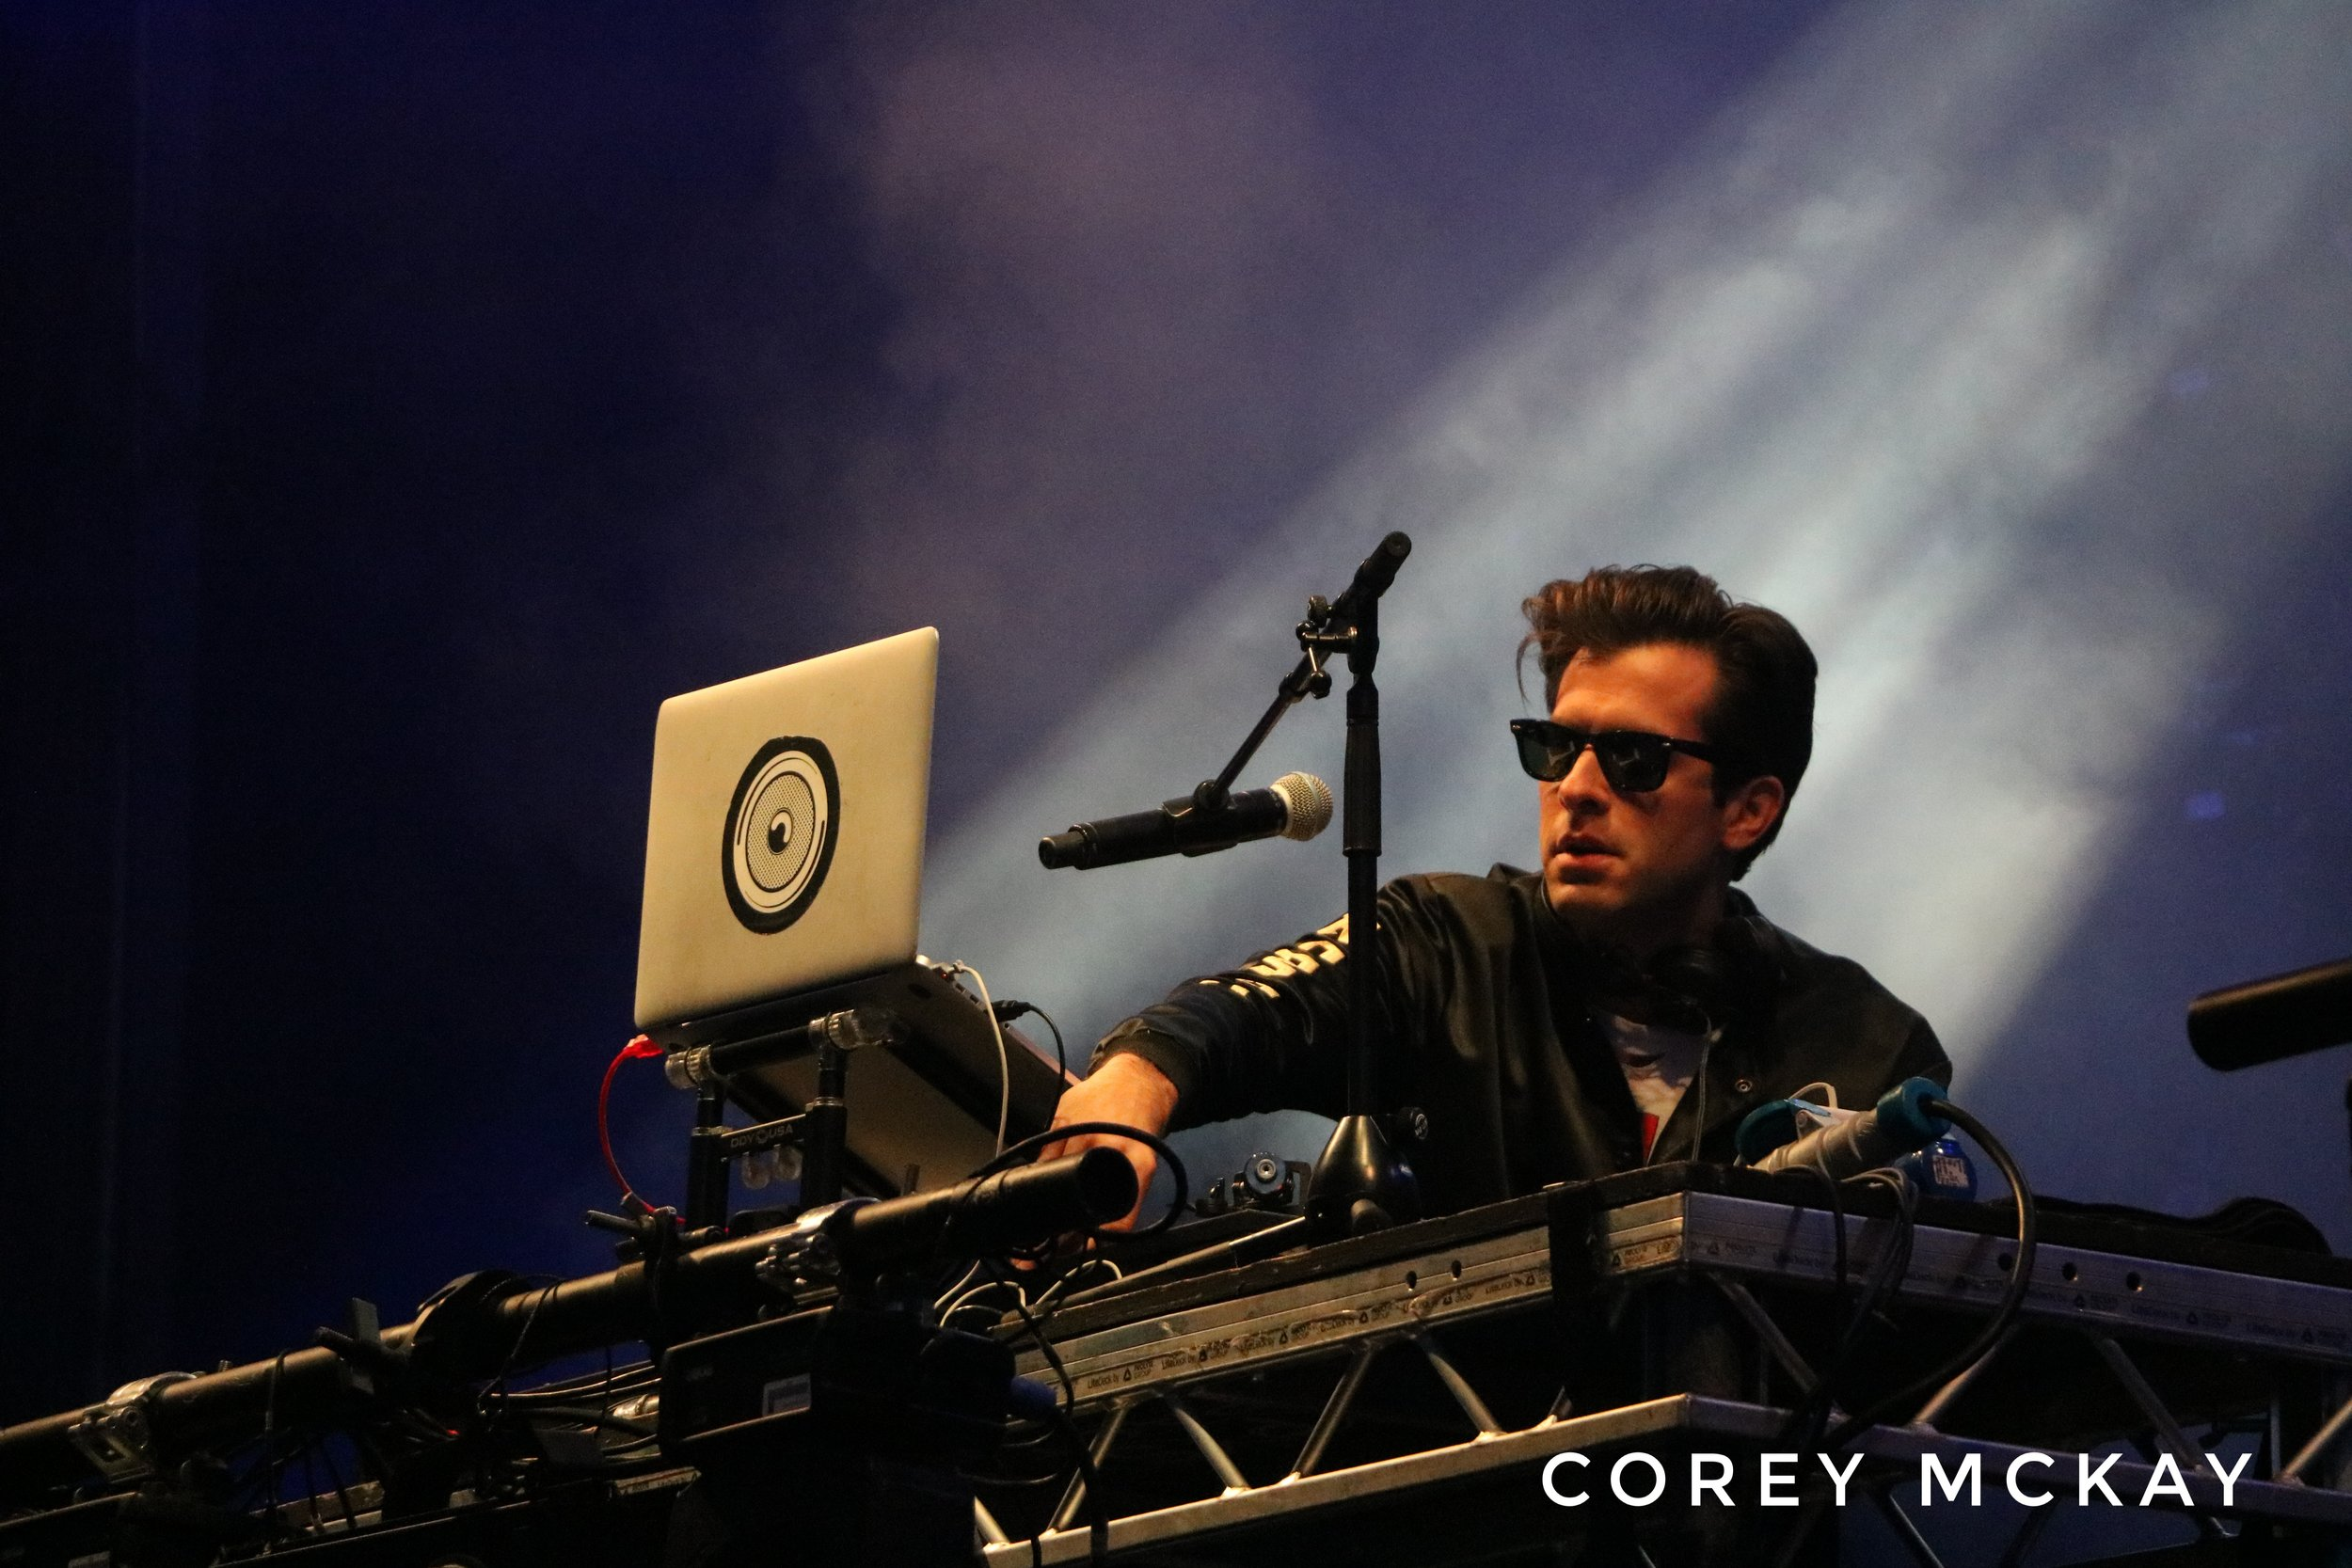 MARK RONSON PERFORMING AT CARNIVAL FIXTY SIX FESTIVAL 2017 - 12/08/2017  PICTURE BY: COREY MCKAY PHOTOGRAPHY